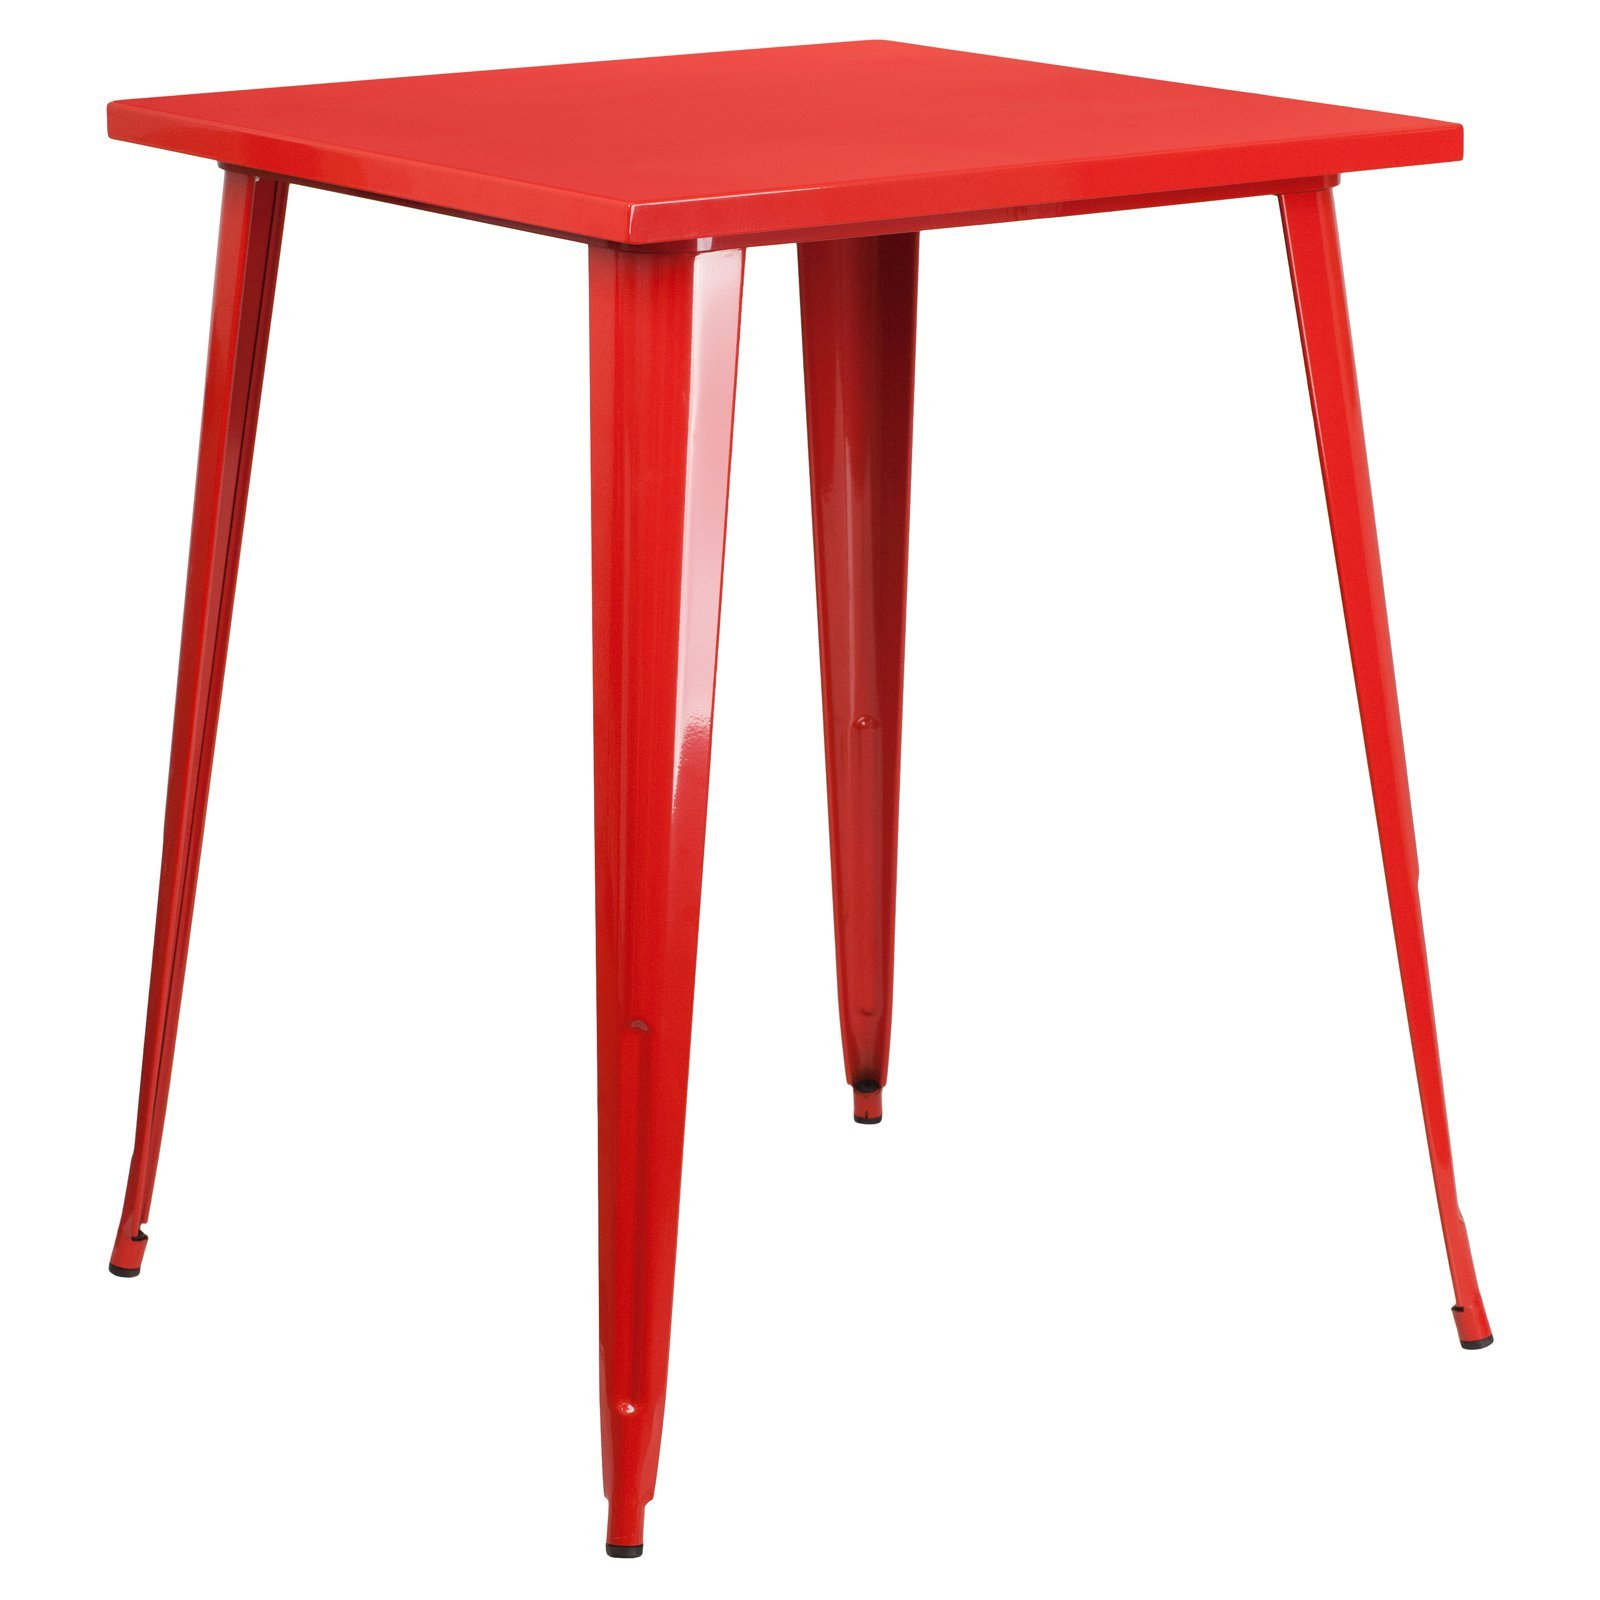 Basic 31.5'' Square Metal Indoor/Outdoor Bar Height Table with Protective Rubber Feet to Prevent Floor Damage, Thick Brace Underneath for Added Stability, Red + Expert Home Guide by Love US